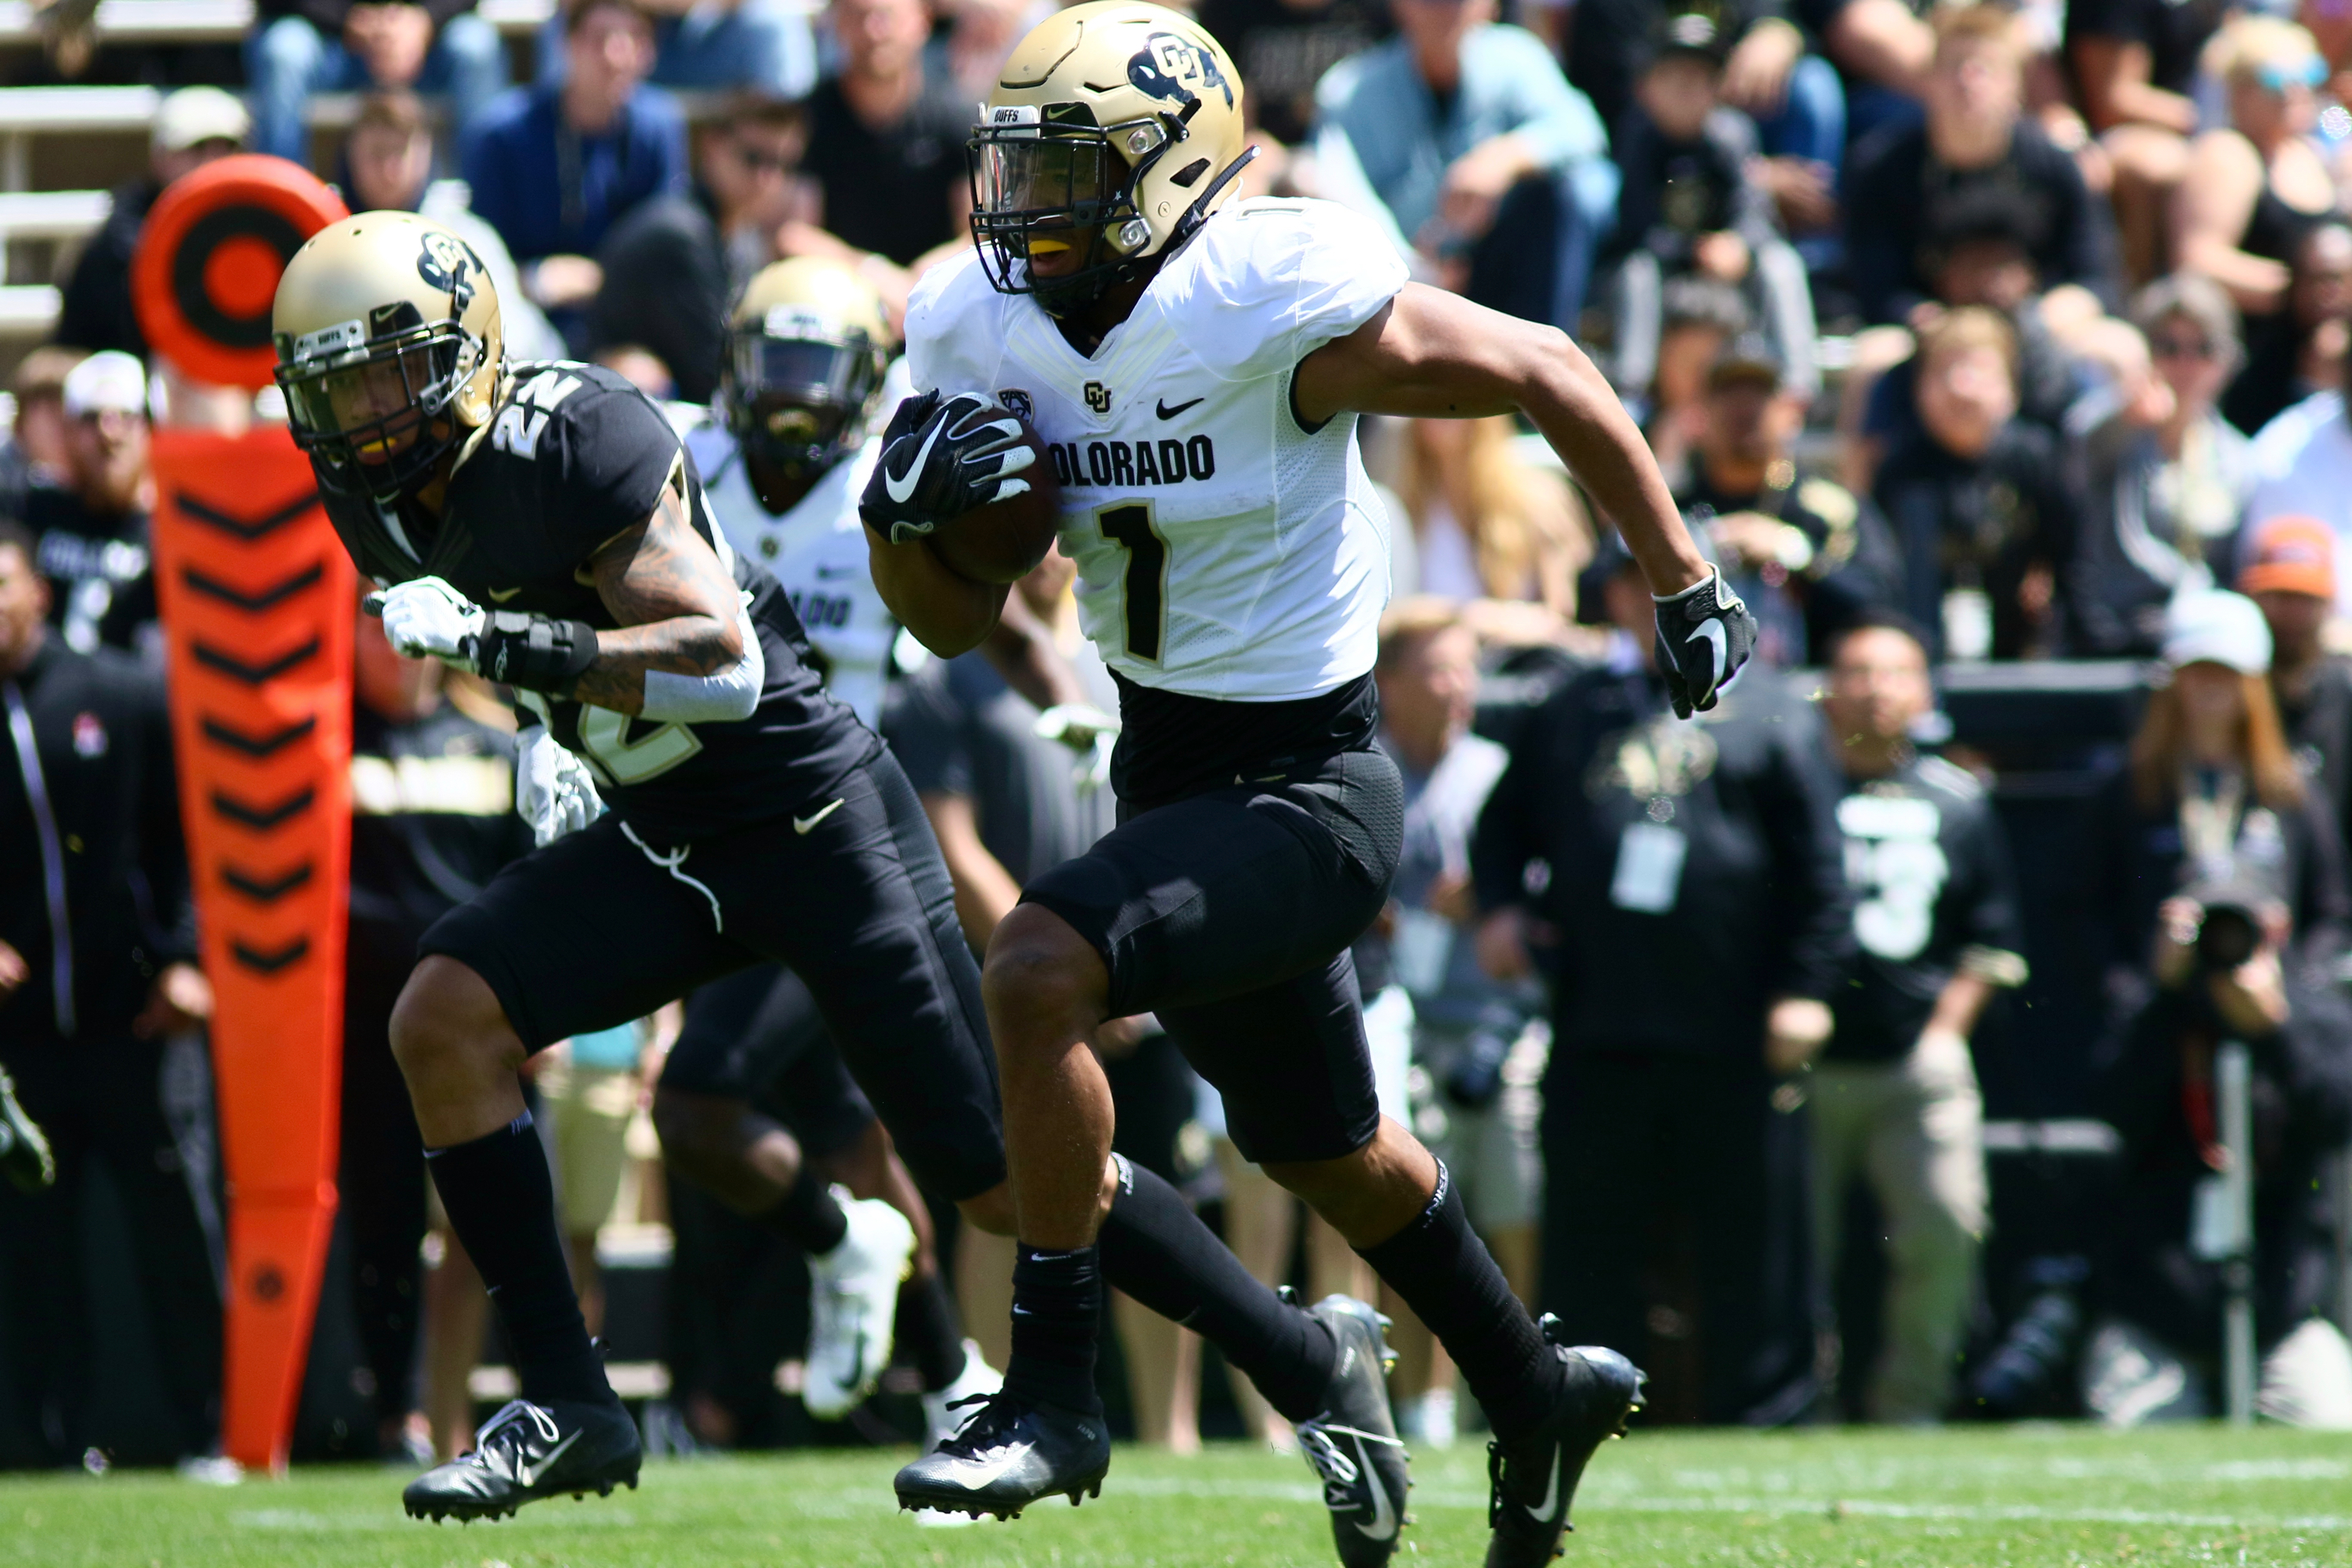 Team Gold prevails during CU's annual Spring Game